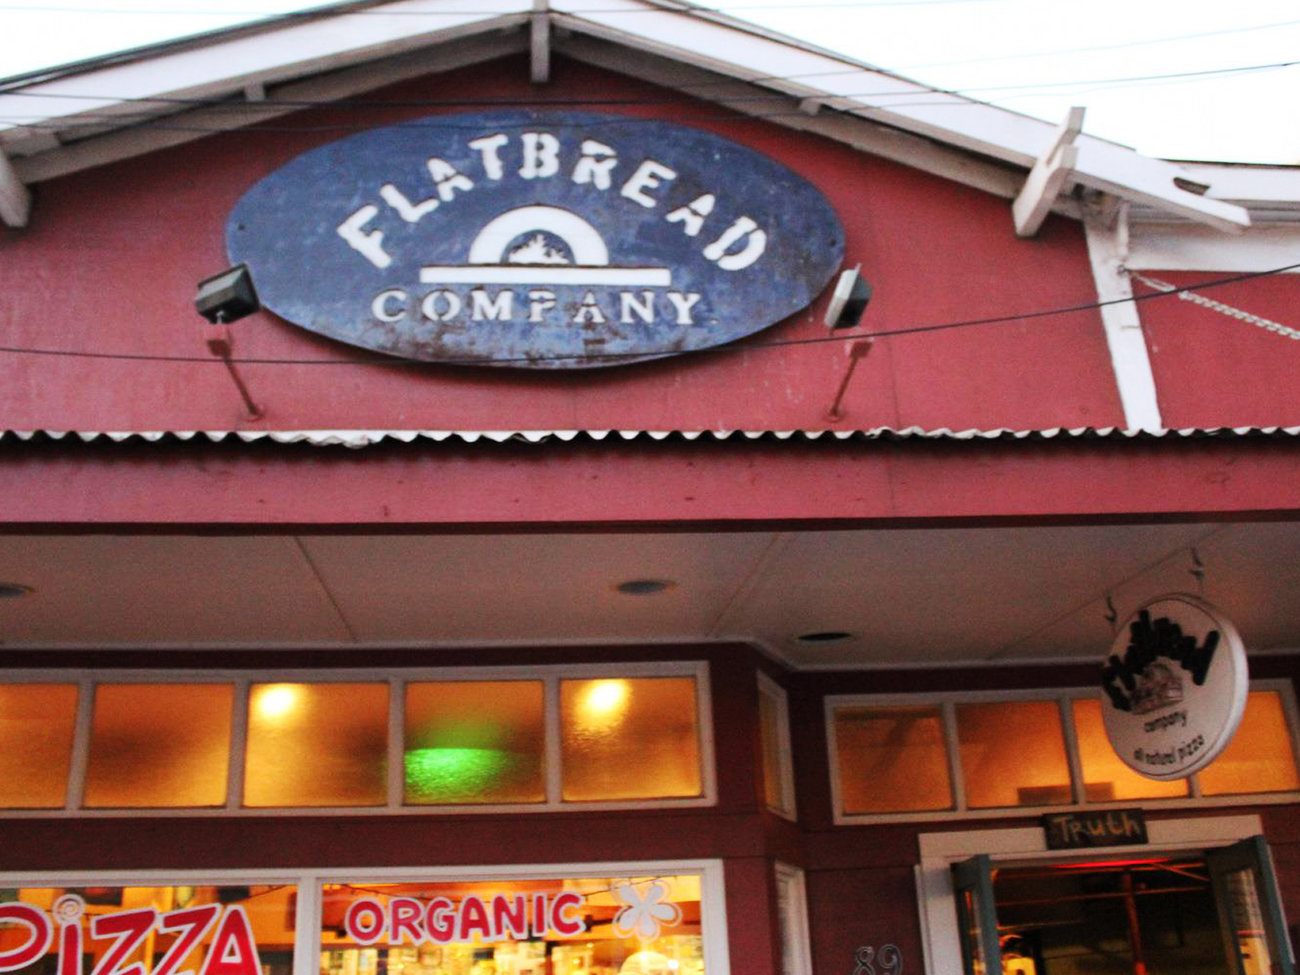 Flatbread Pizza Company Restaurant in Maui